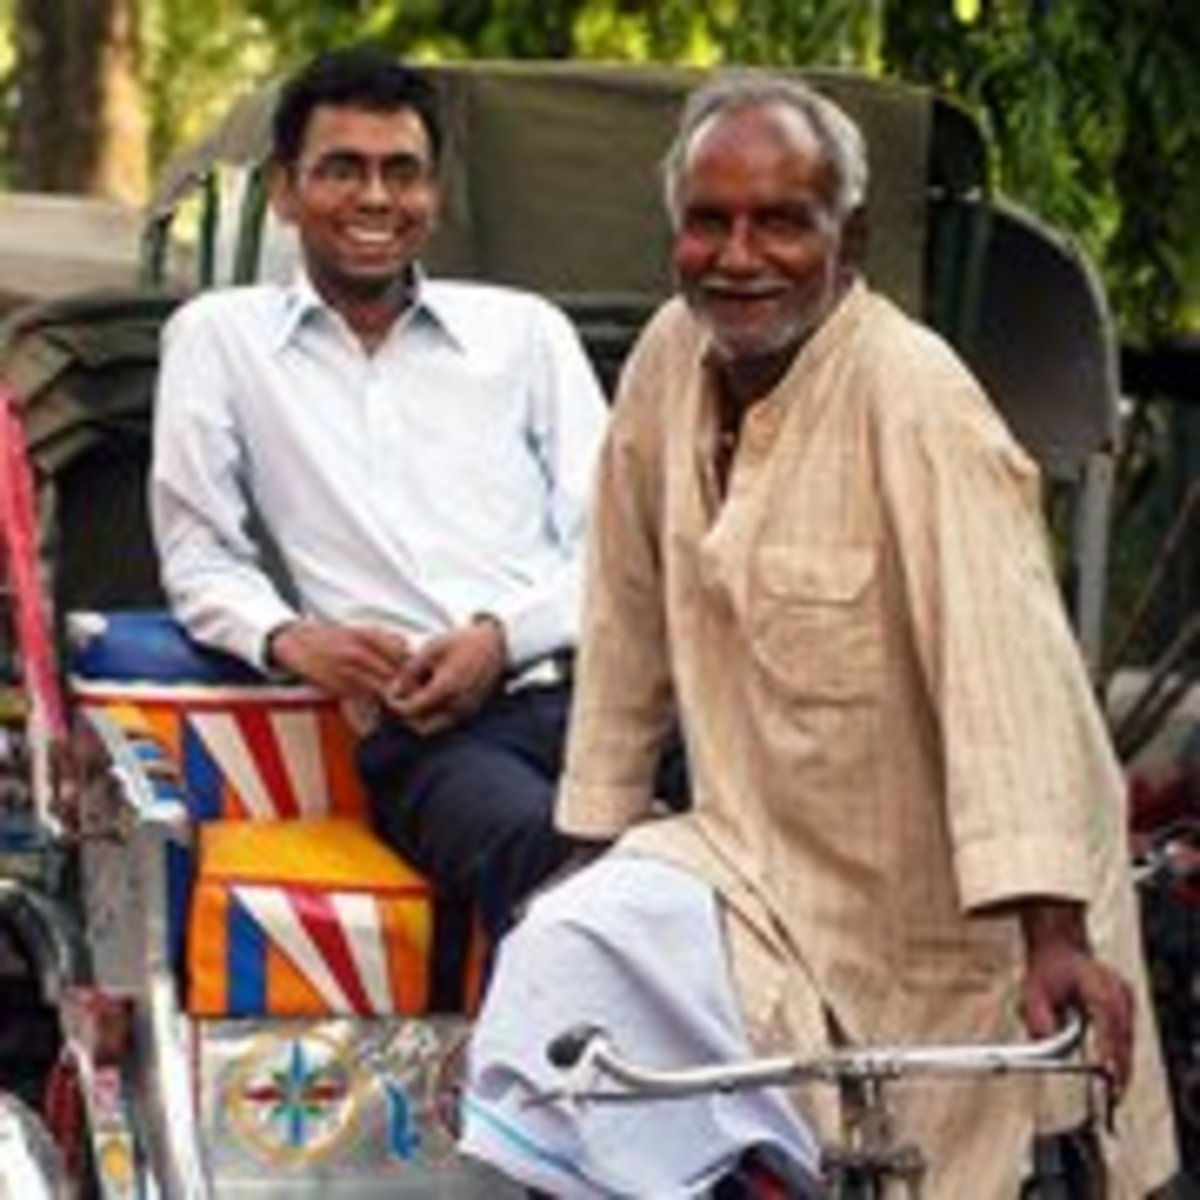 Biography of Govind Jaiswal. Son of a rikshaw vendor who cracked the IAS 2006 with his determination and hard work.